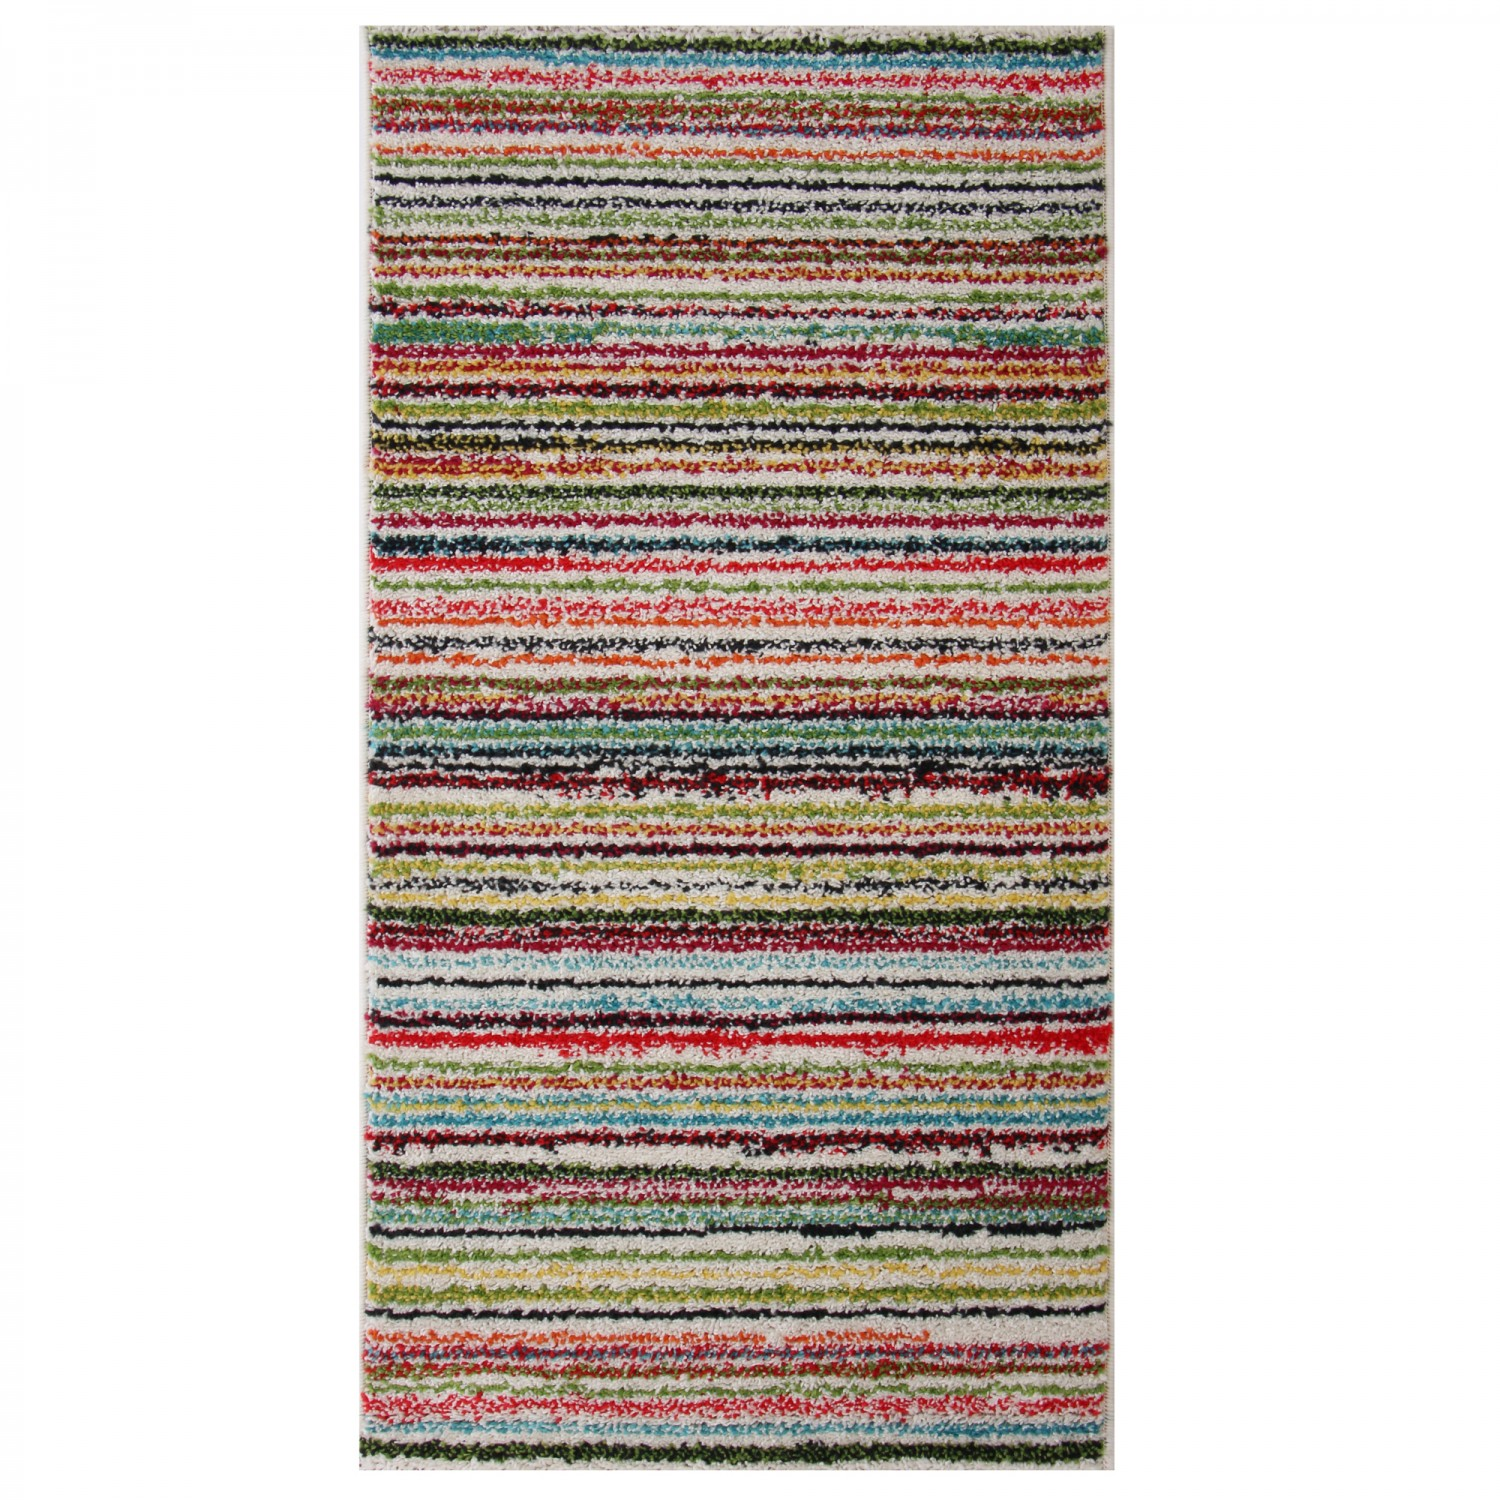 Covor living / dormitor McThree Swing 6251 3P01 polipropilena frize, heat-set dreptunghiular multicolor 60 x 110 cm